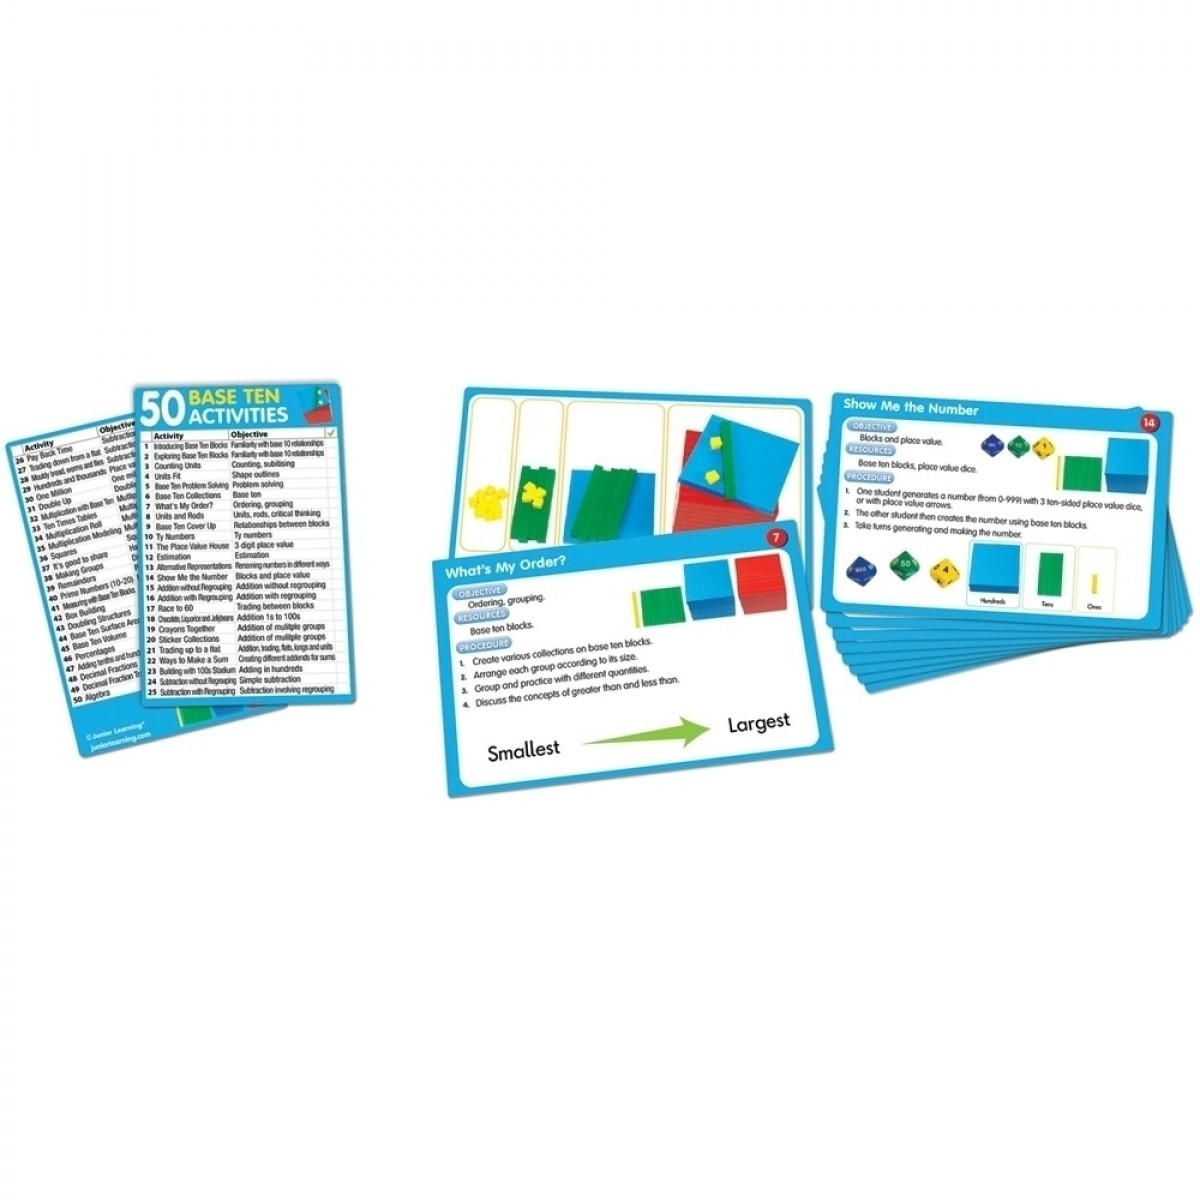 50 Base Ten Activity Cards - Junior Learning Educational Resources